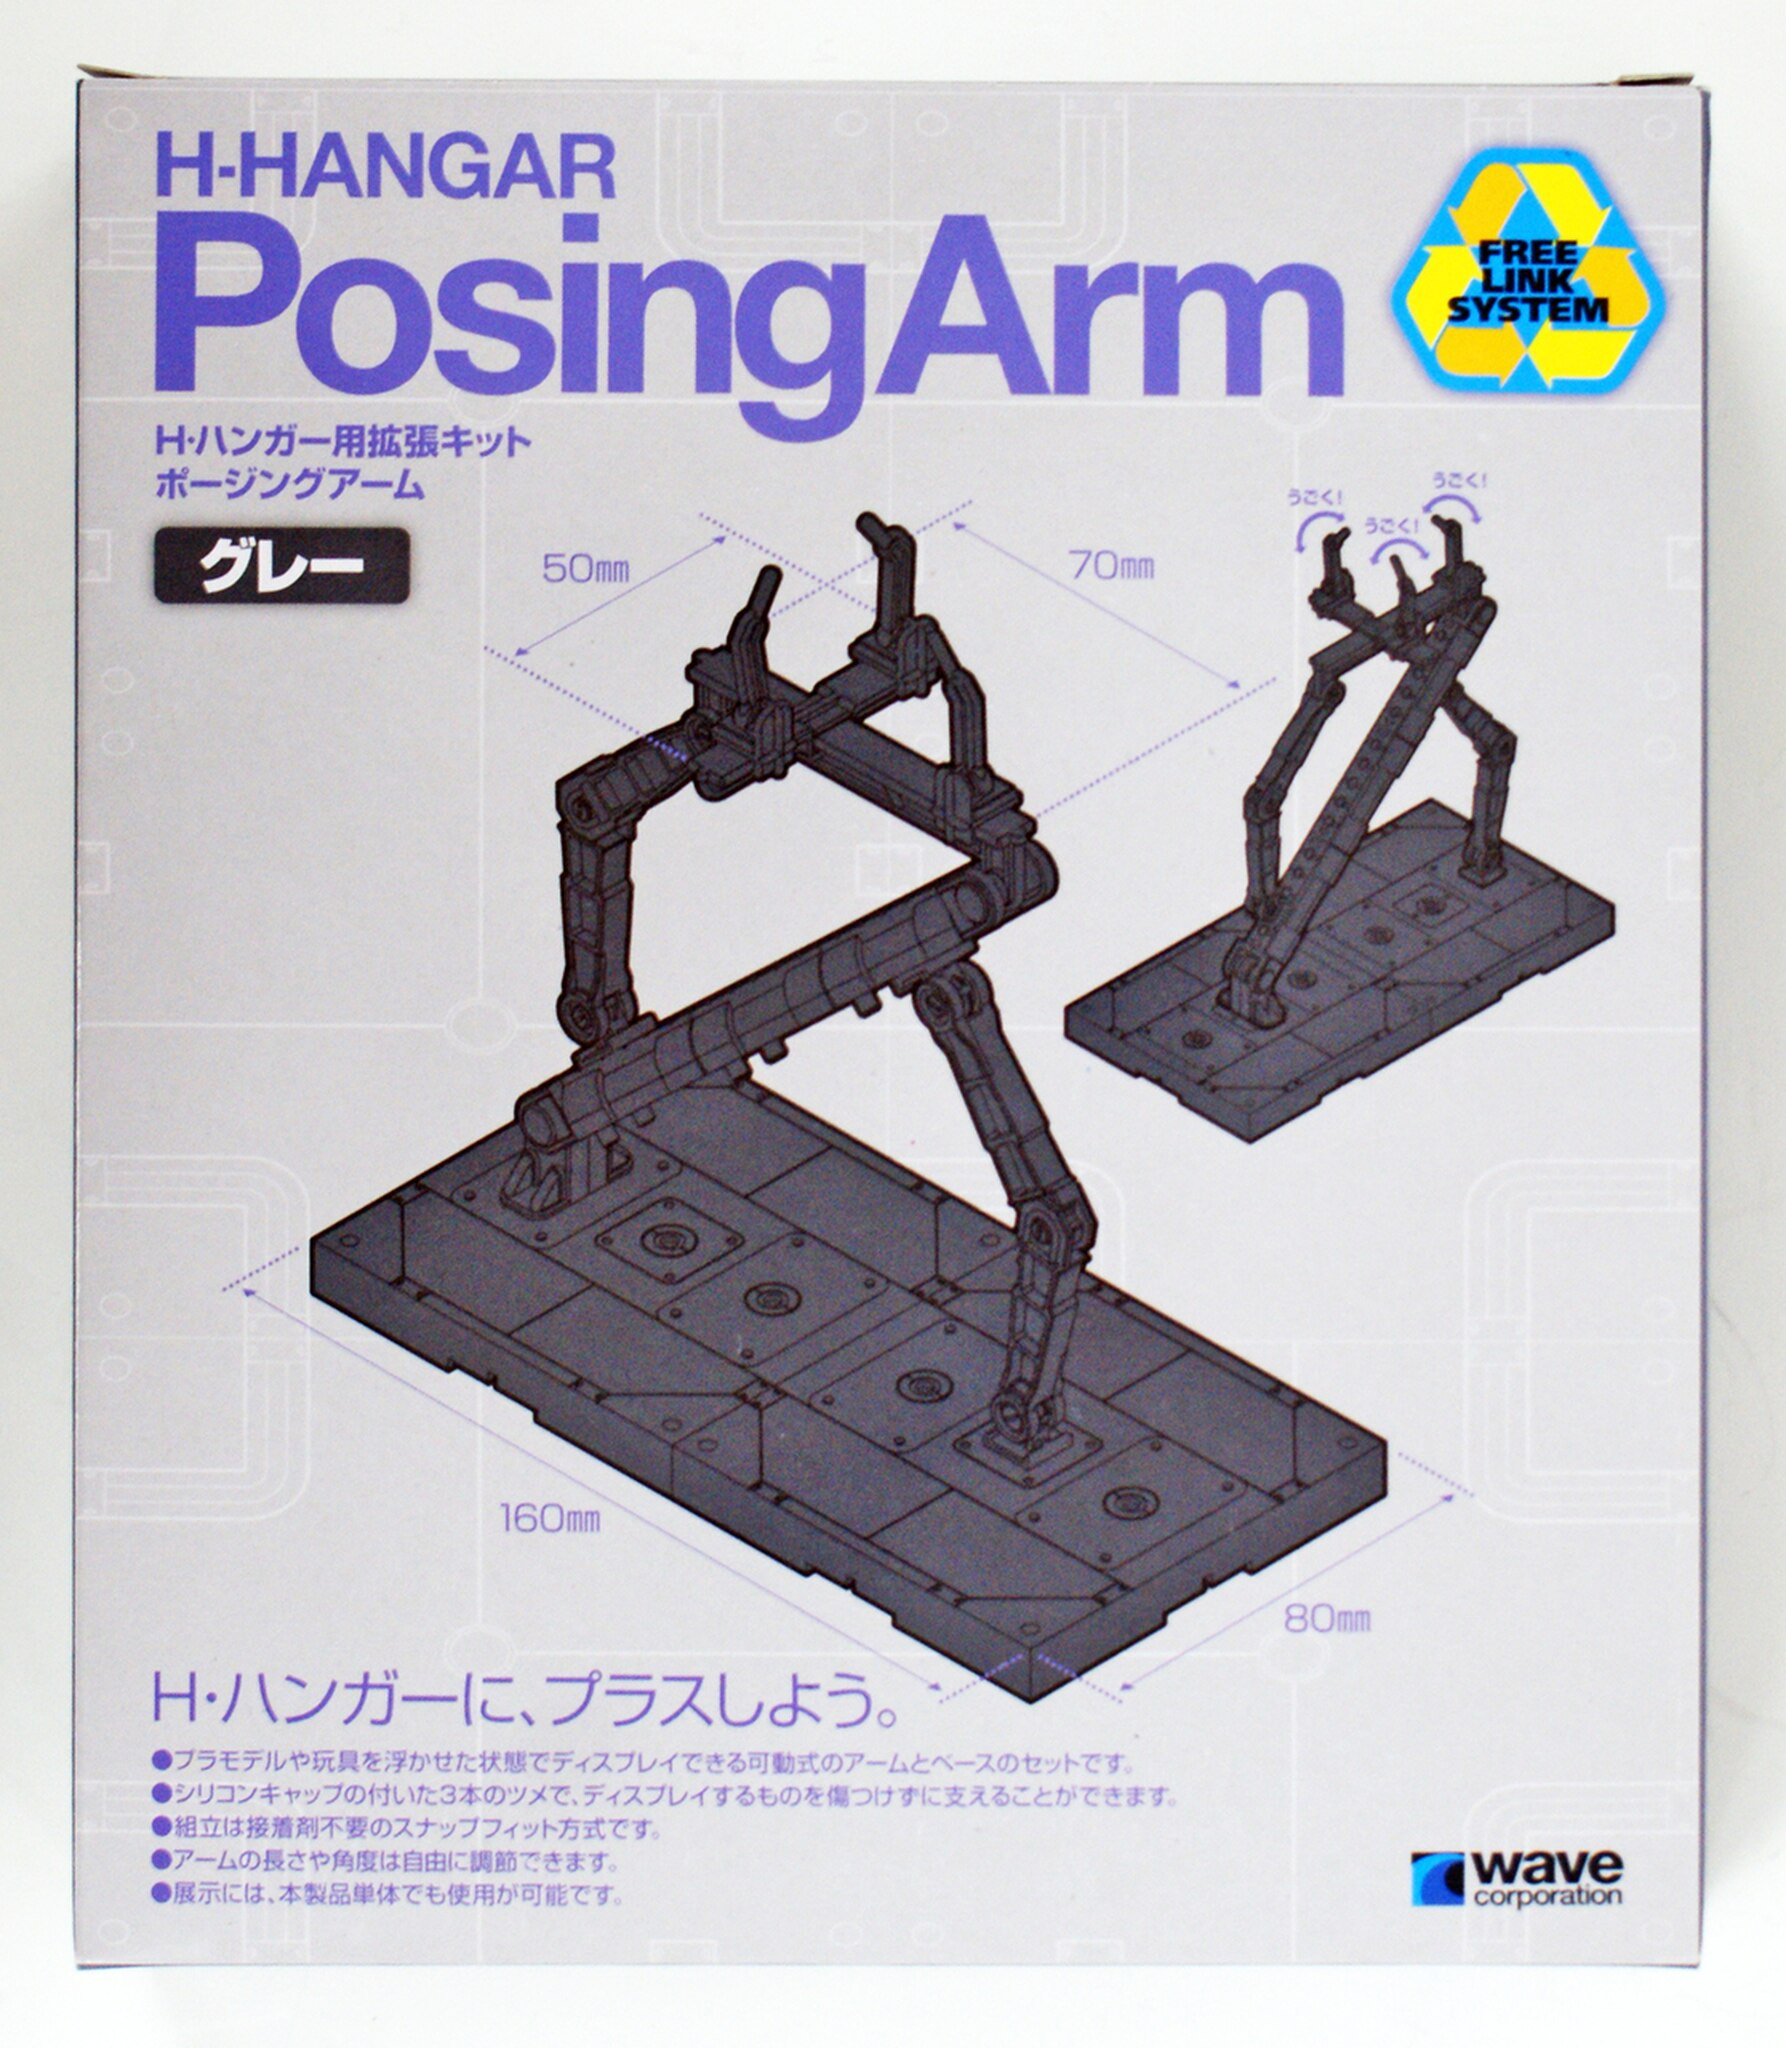 Wave H Hanger POSING ARM (GRAY) - Display Stand with Versatile Claws for Various Model Subjects x2 Pack